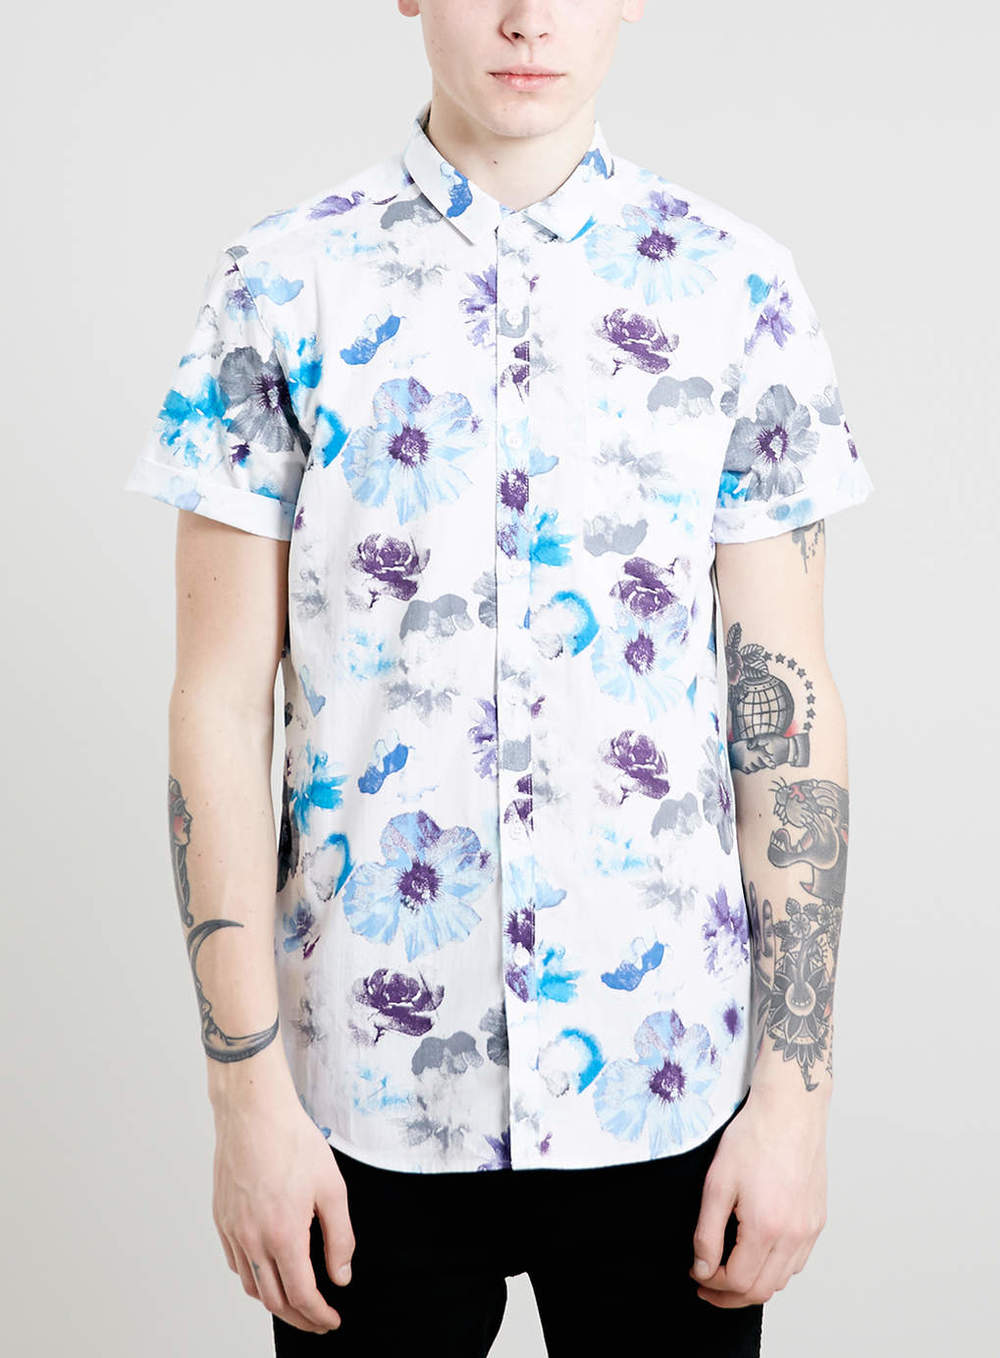 White Floral Print Short Sleeve Shirt, $55